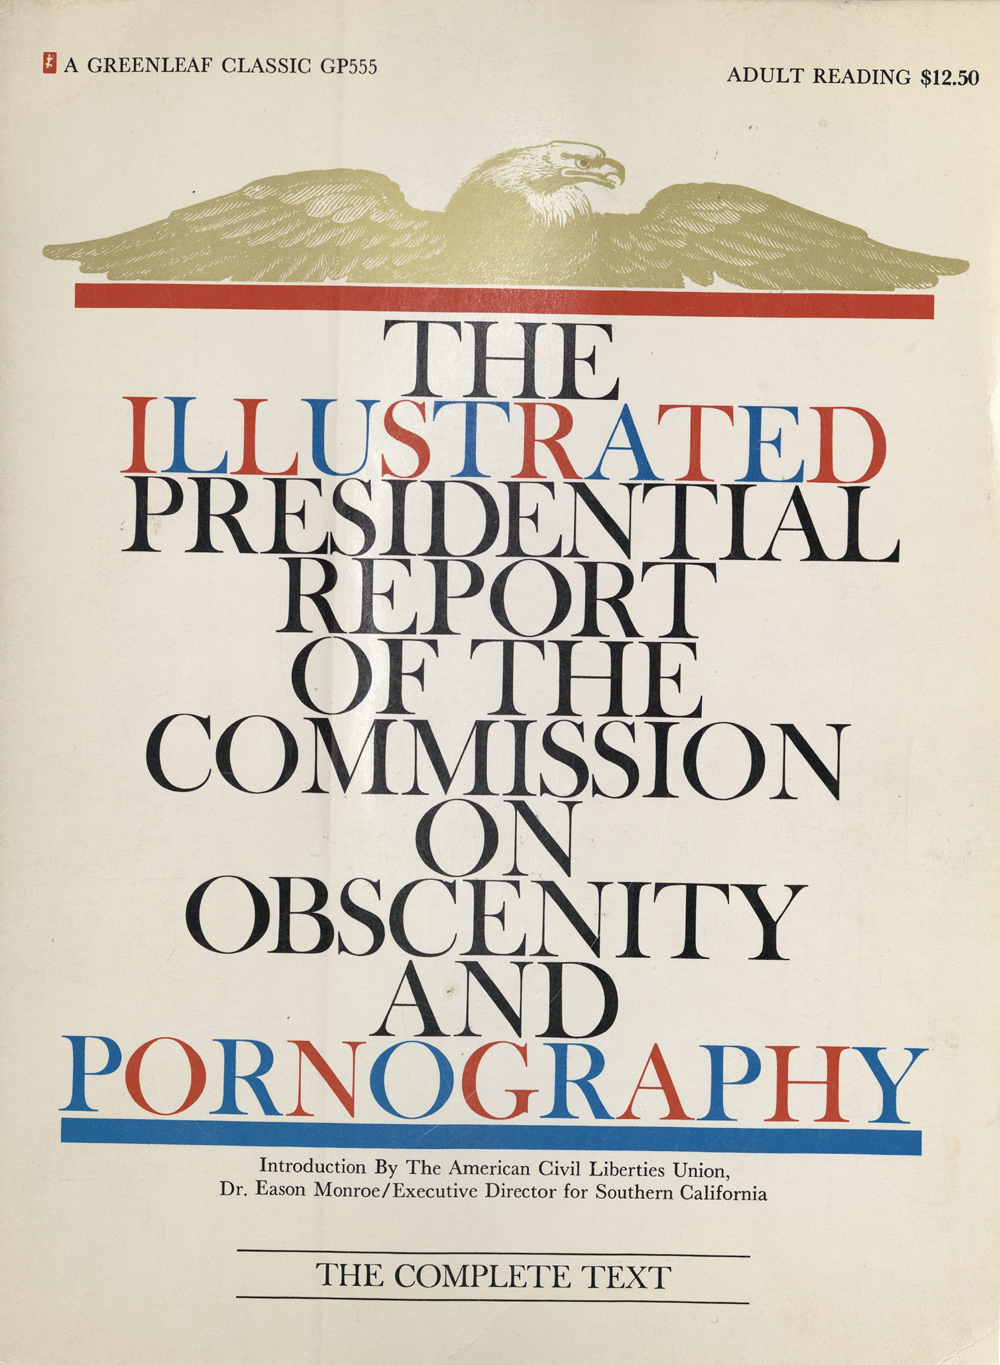 Commission illustrated obscenity pornography presidential report